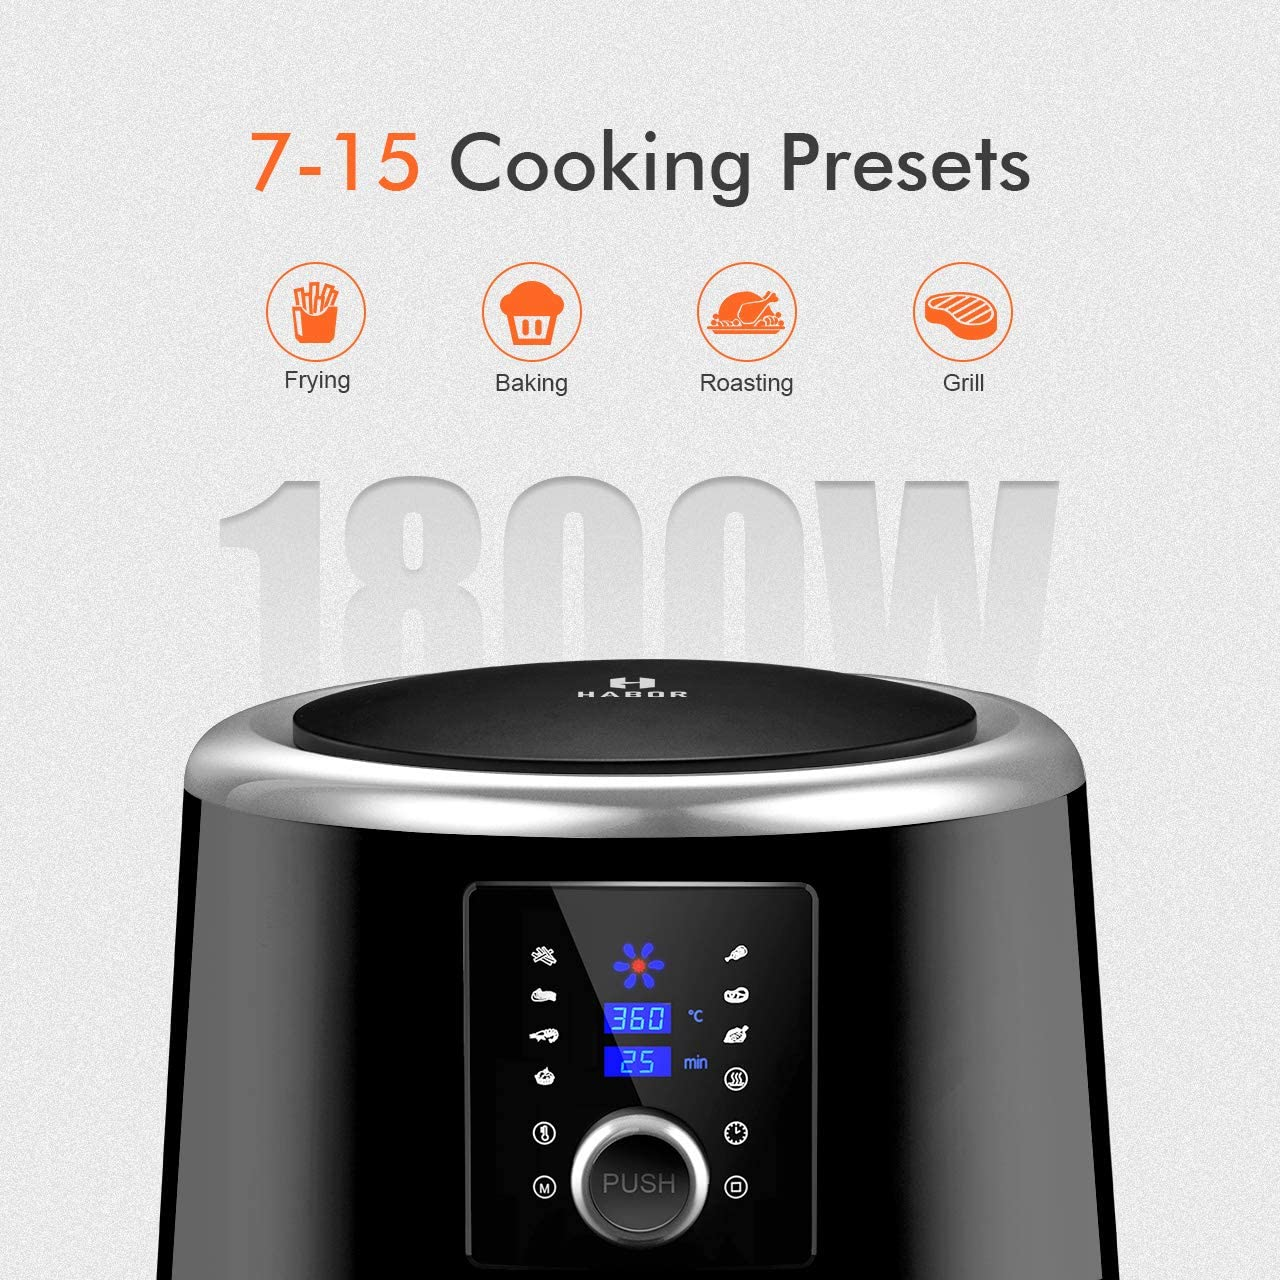 Habor Upgraded Air Fryer W Cookbook , 6QT Hot Air Fryer Oven, 8 Cooking Presets with Heat Preservation Function, Digital TouchScreen, Detachable Basket Dishwasher Safe, Classical Black-122AB